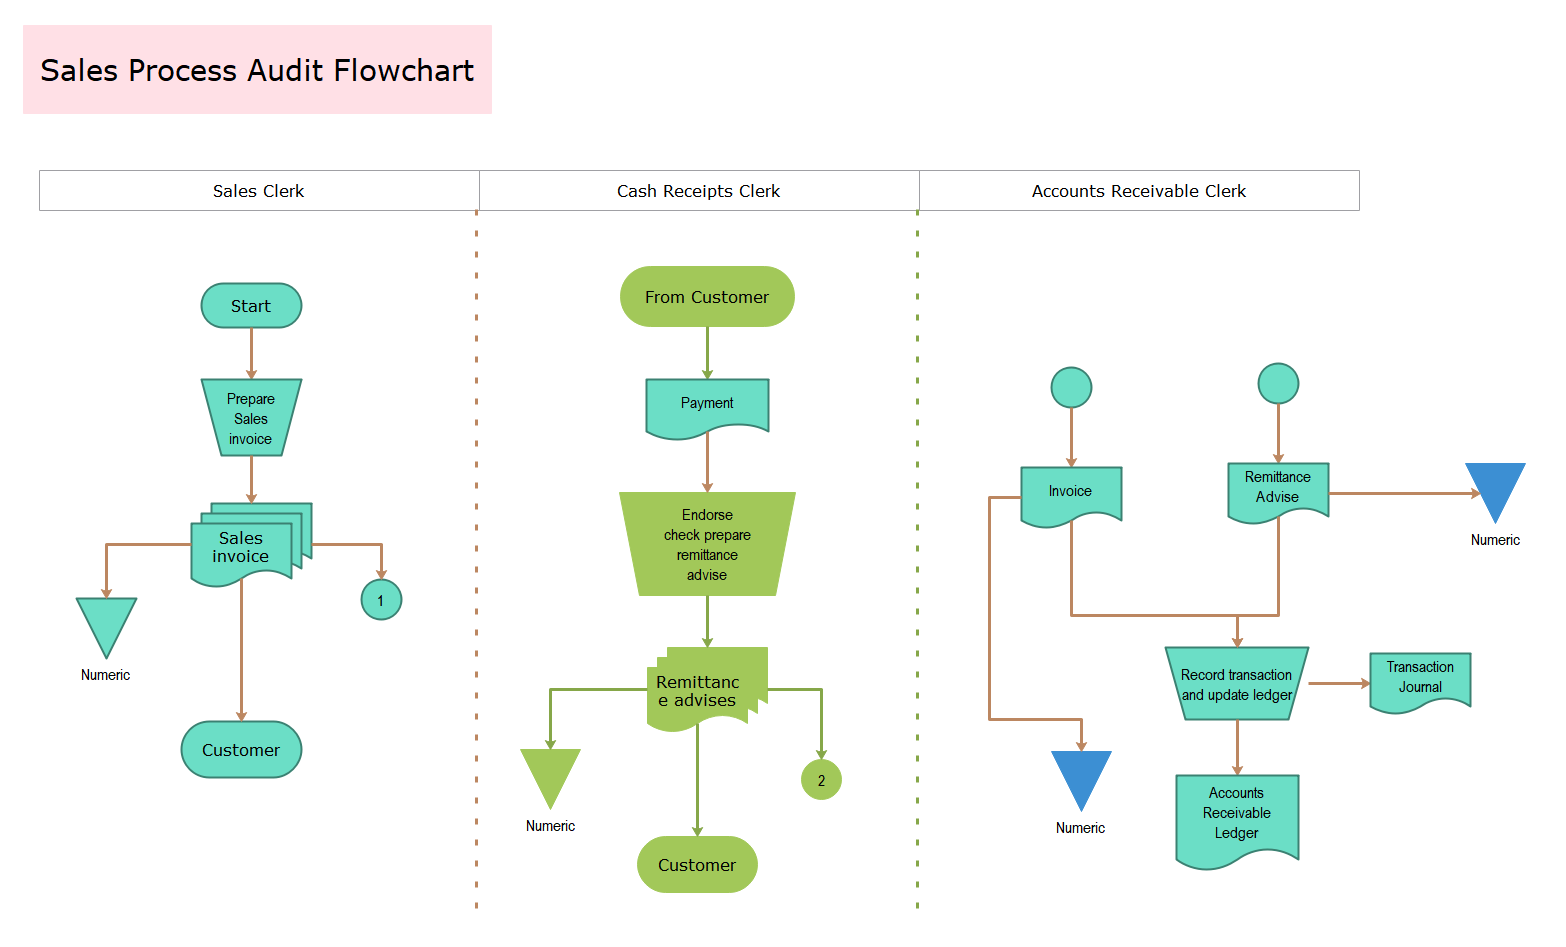 Sales Process Audit Flowchart